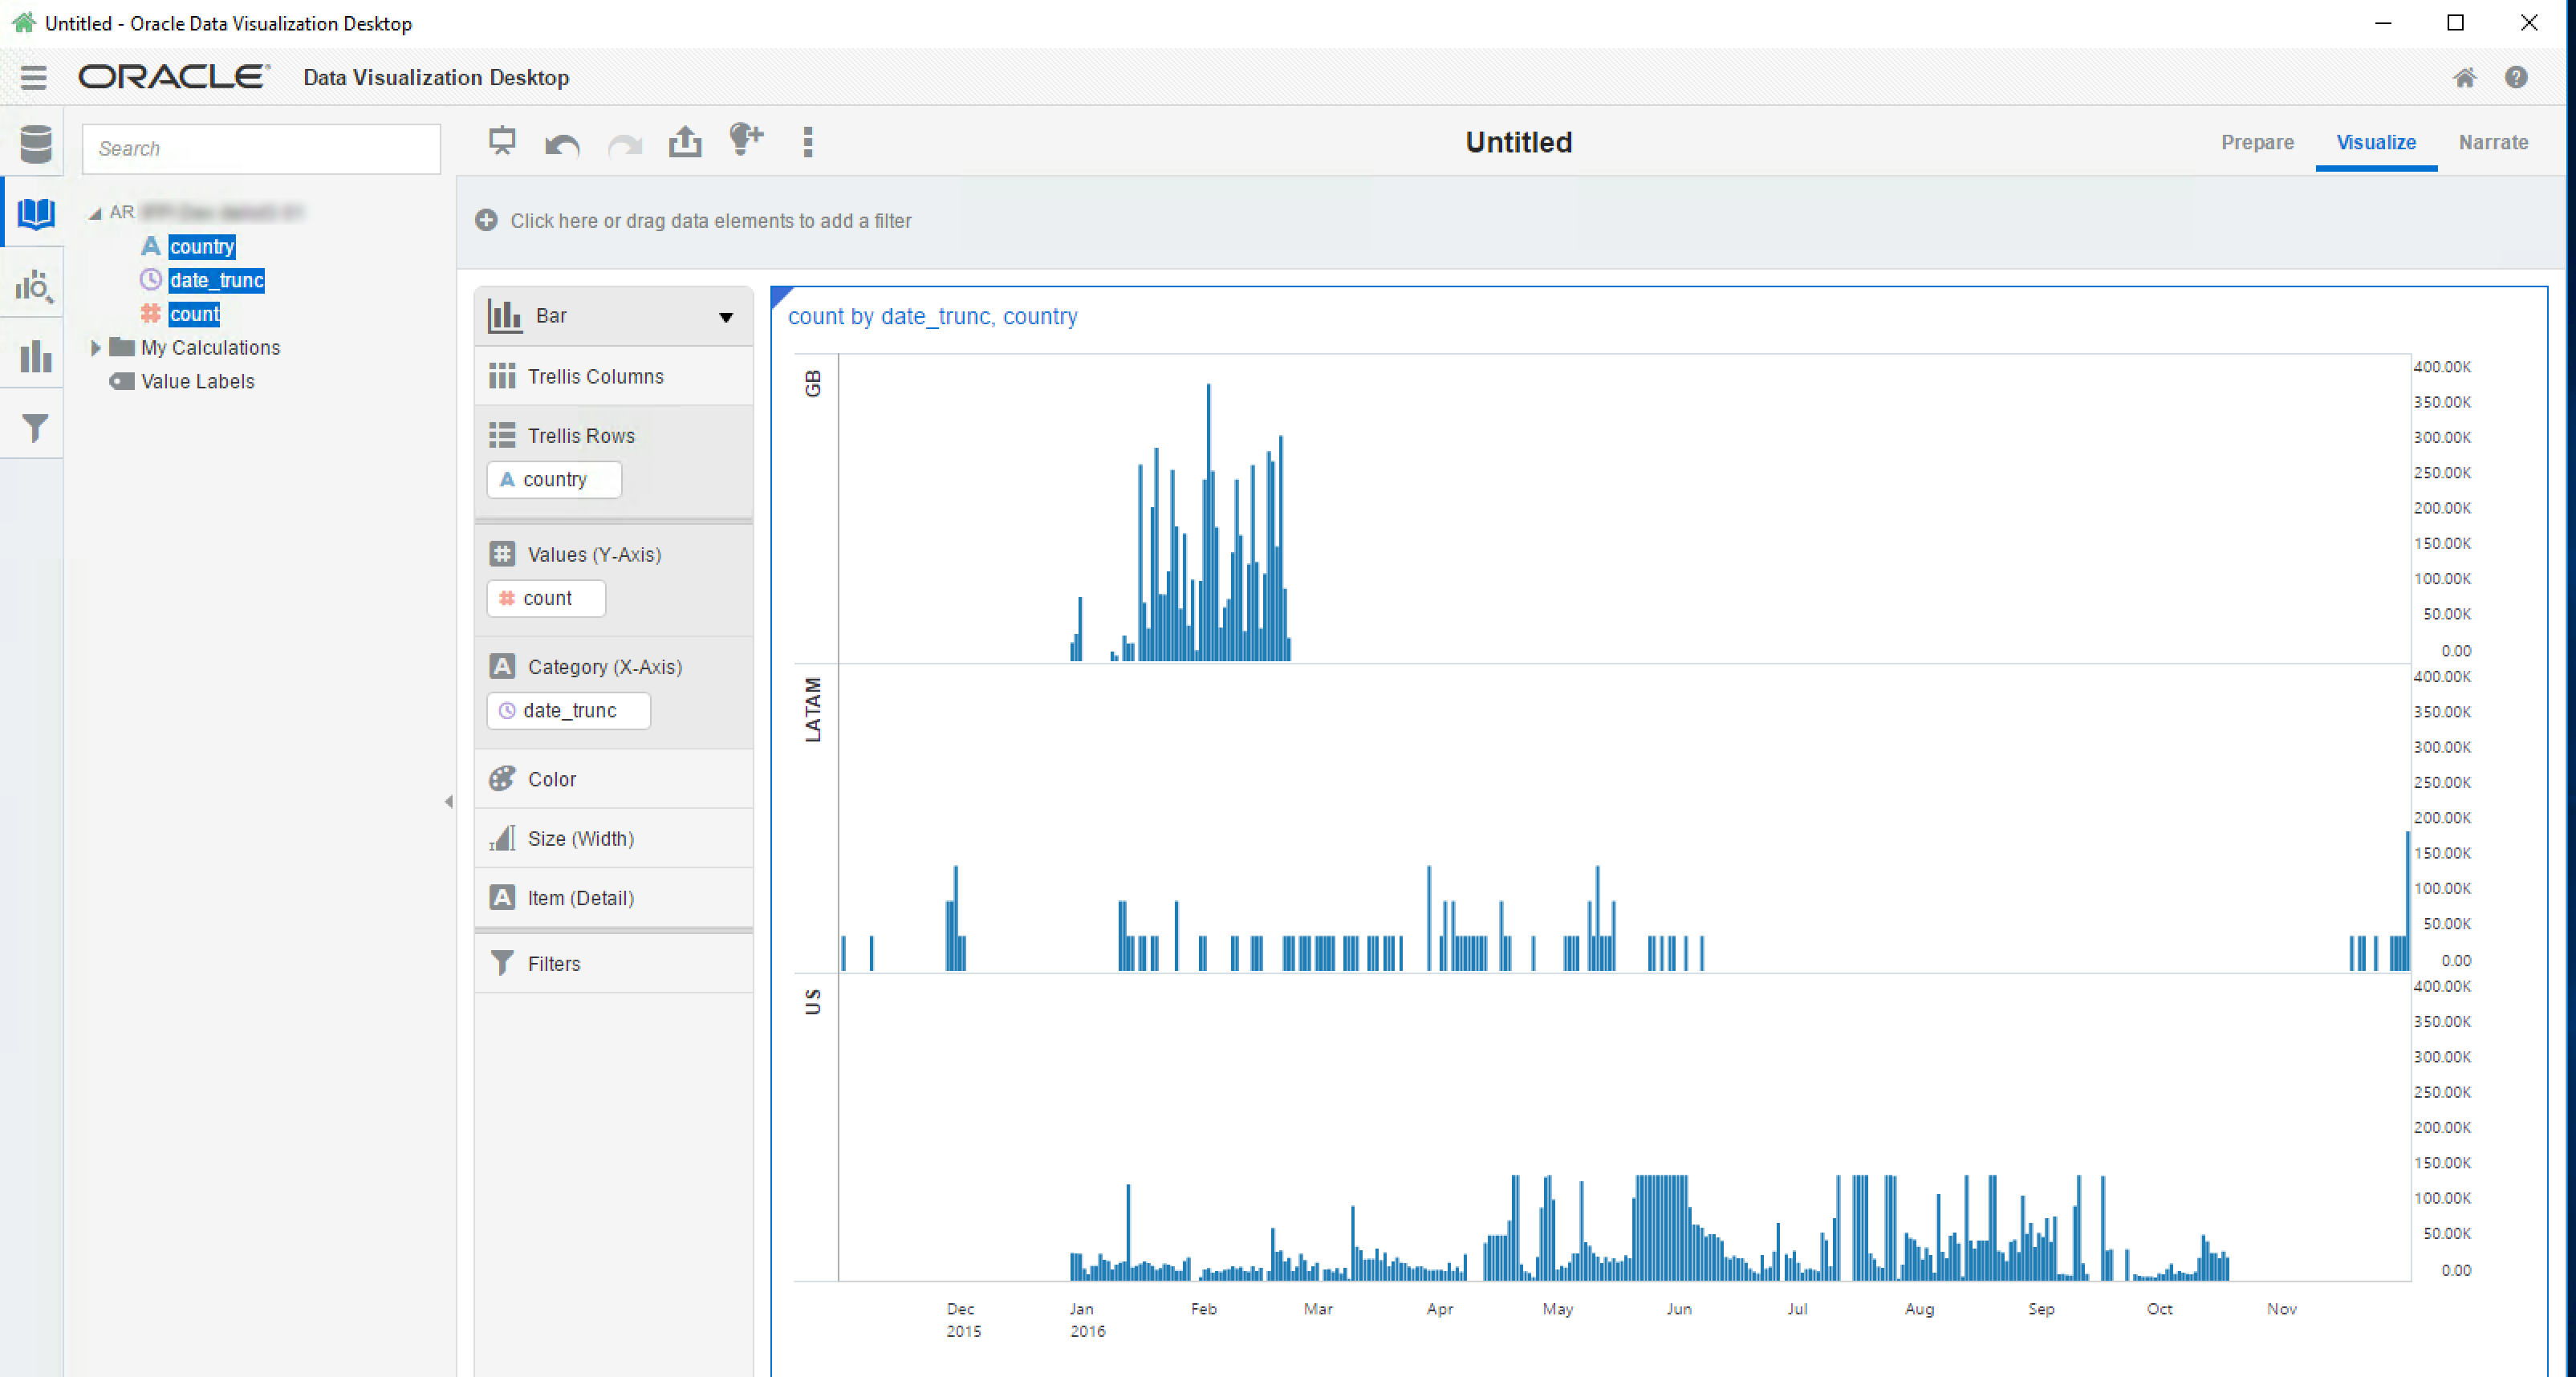 ETL Offload with Spark and Amazon EMR - Part 4 - Analysing